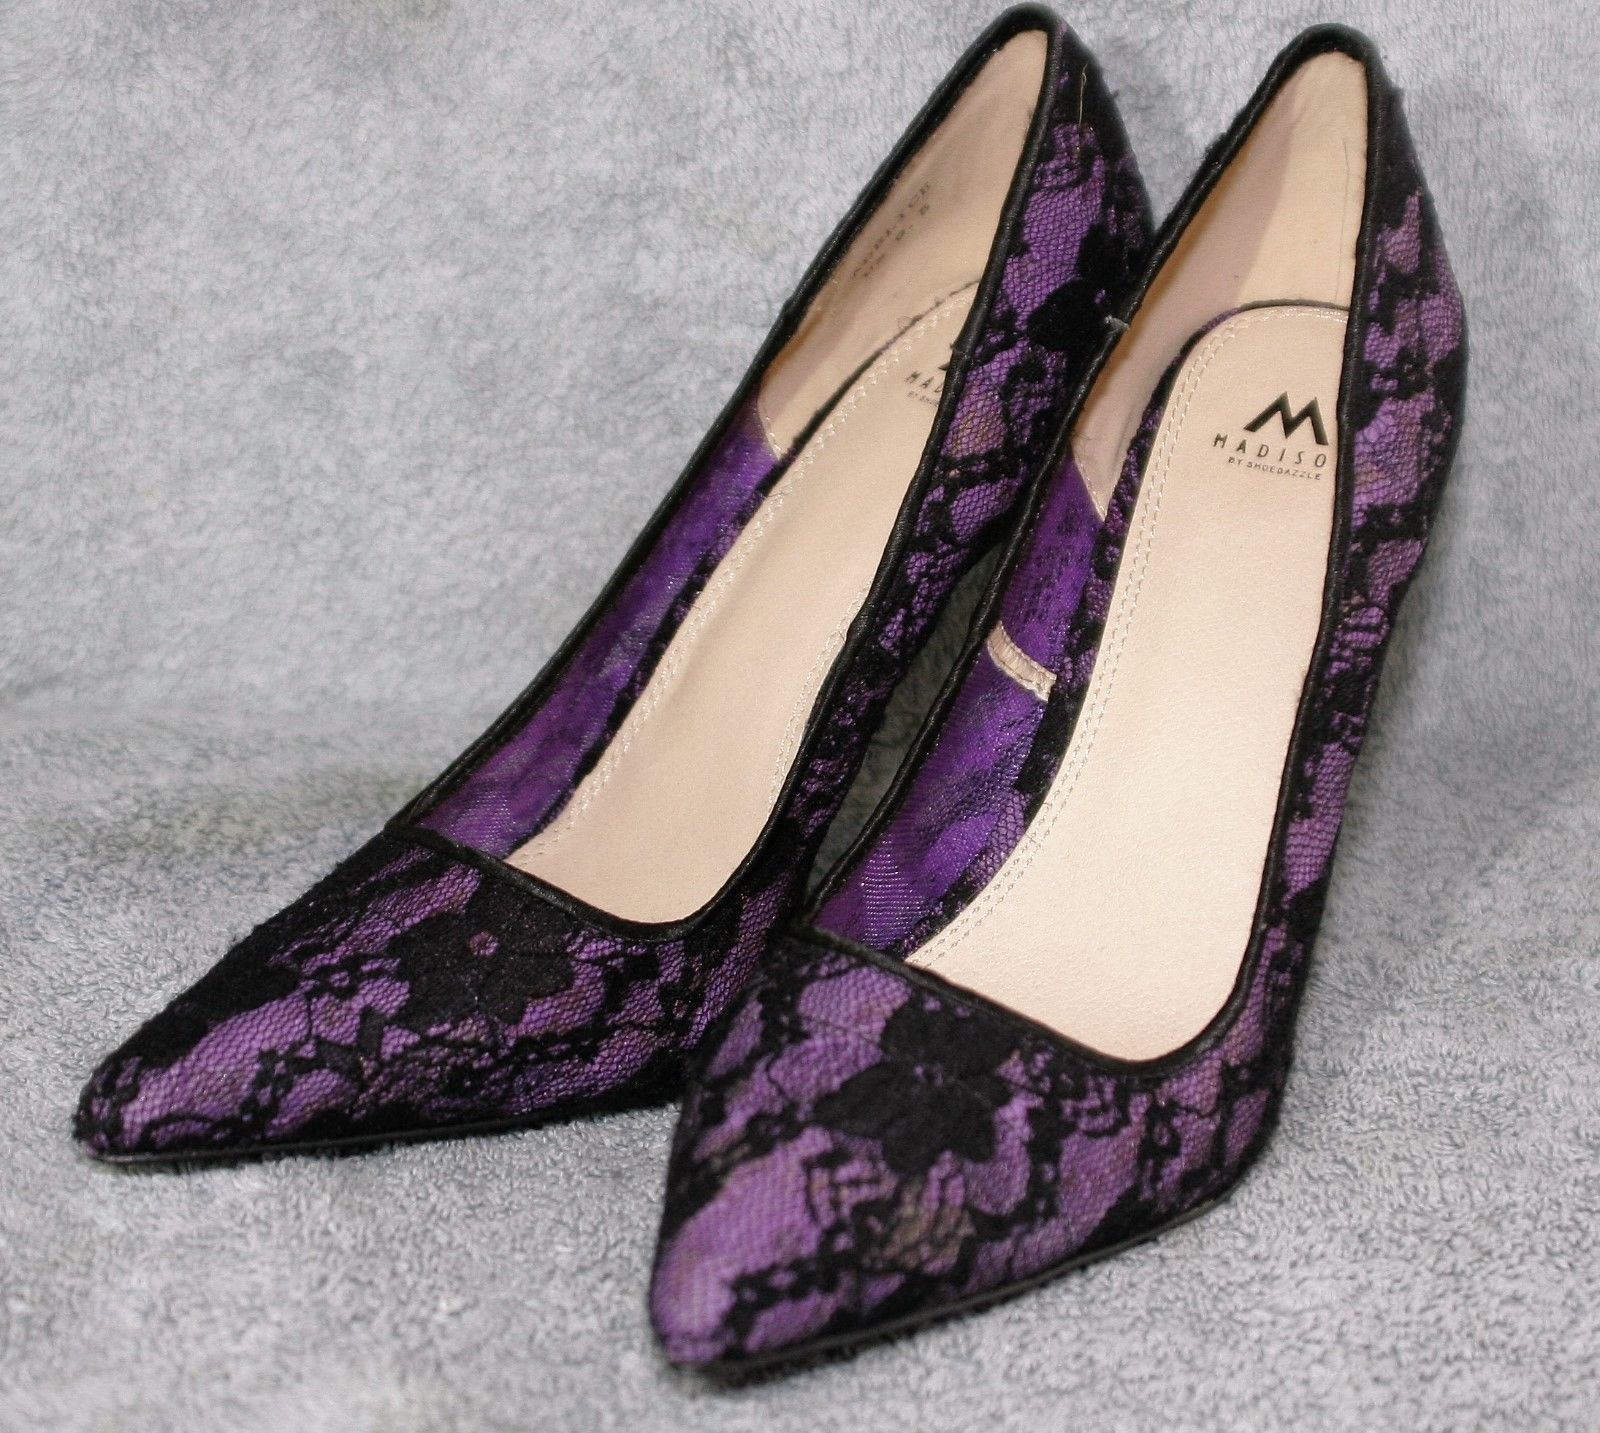 Madison by Shoedazzle La s Adel Ice Purple and 7 similar items